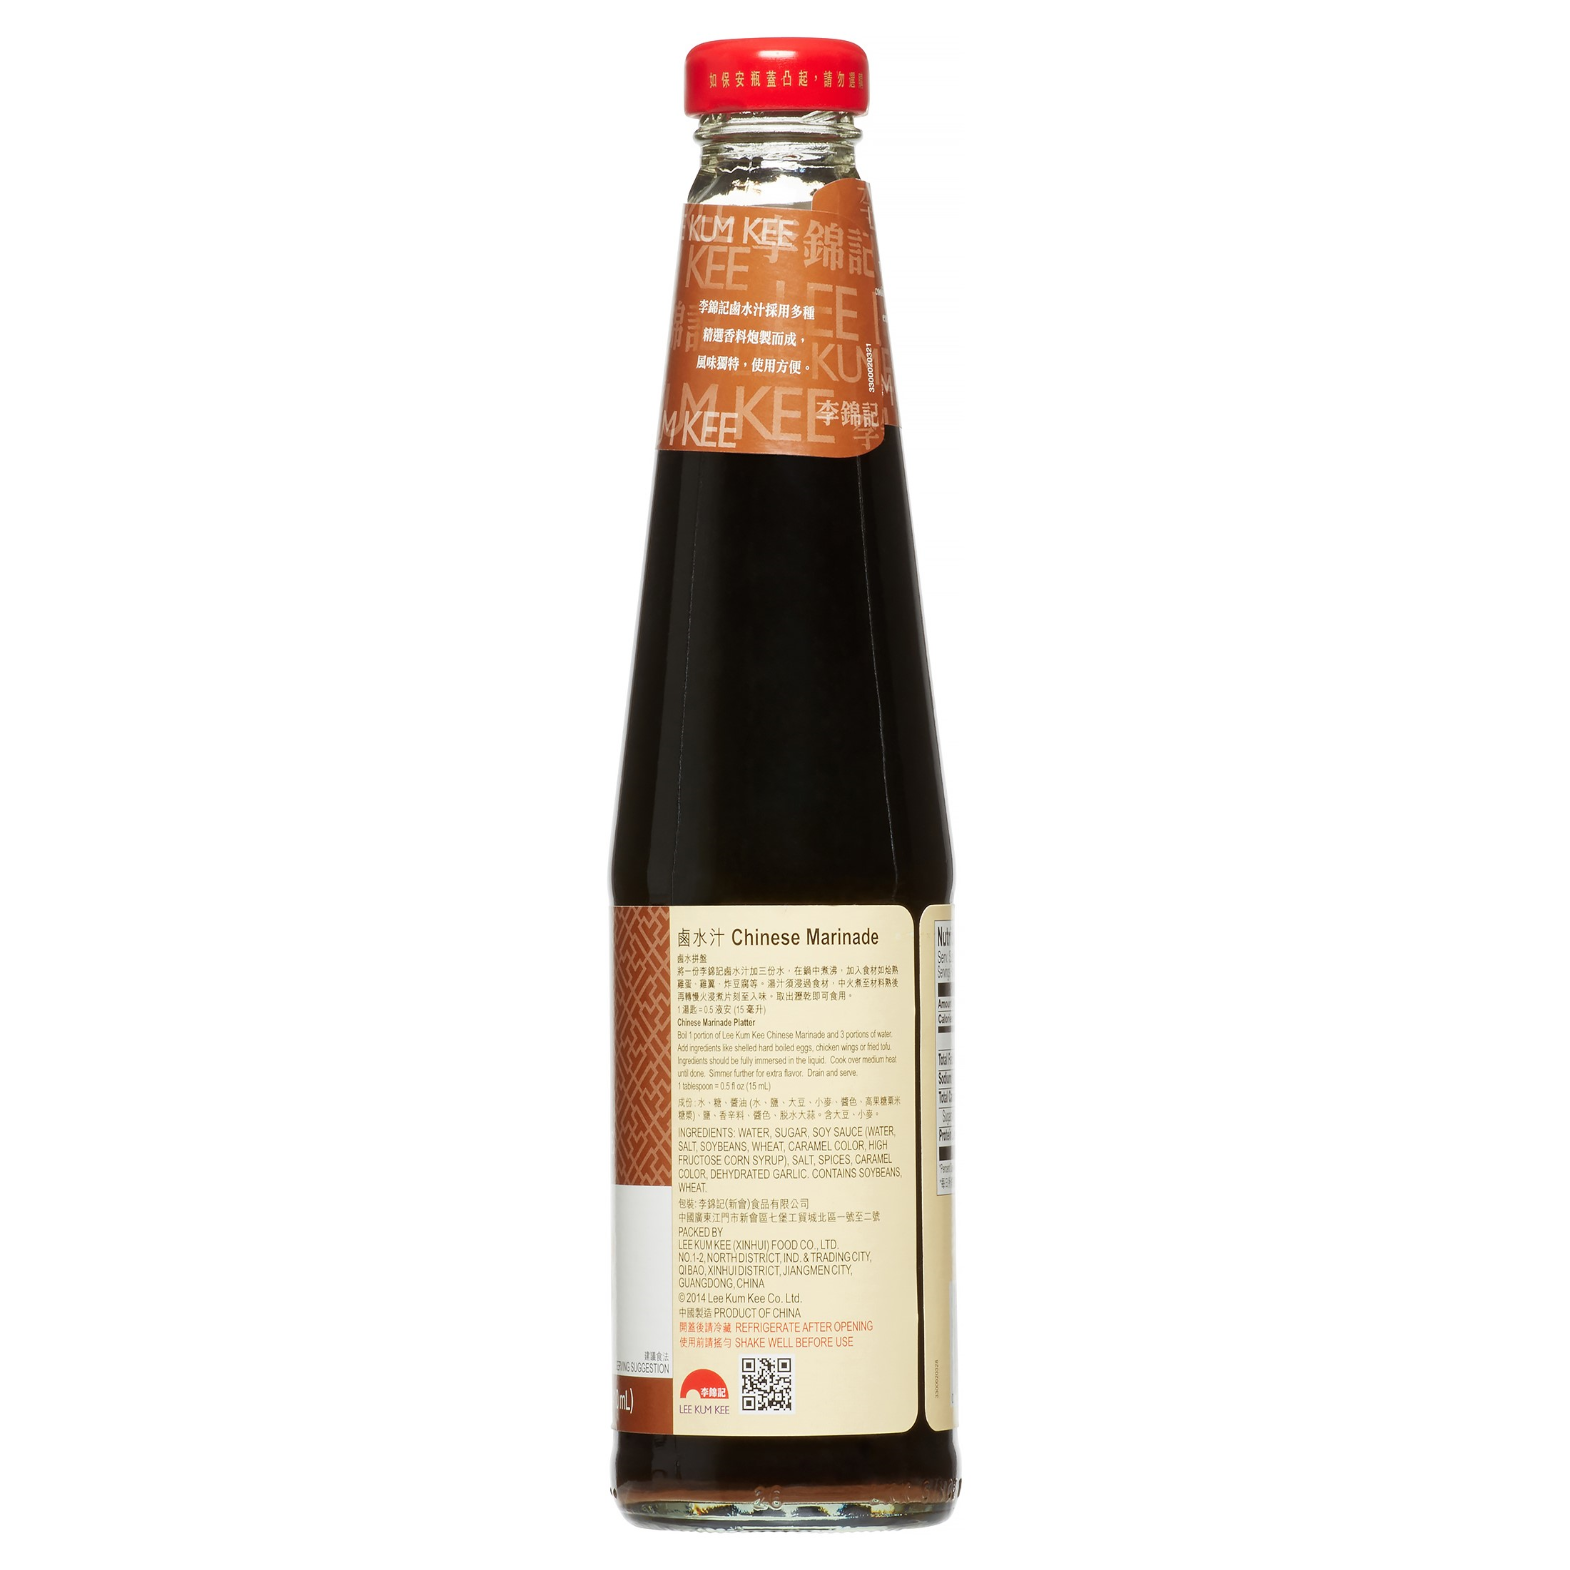 original lee kum kee chinese marinade sauce 14 oz TP26HZkae 3